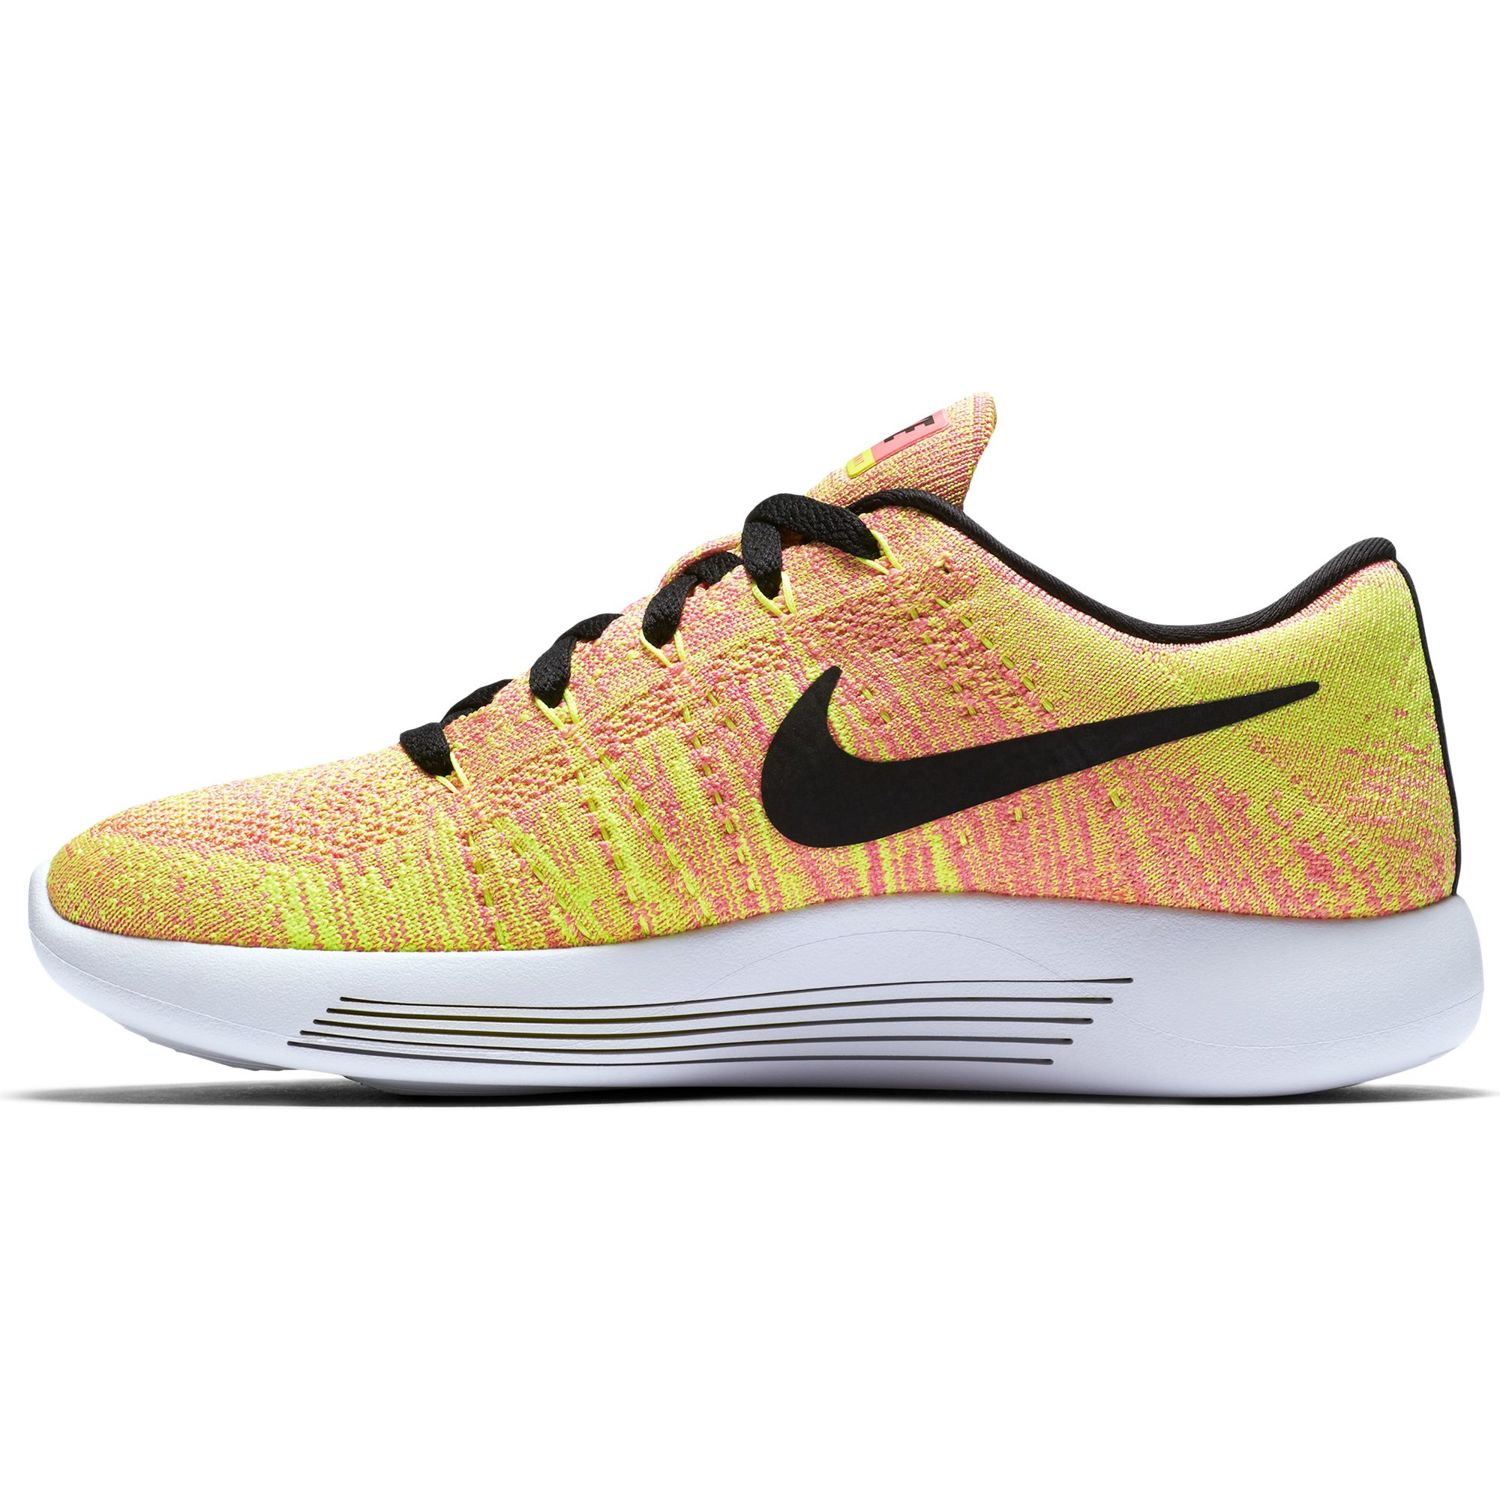 Buty do biegania Nike Lunarepic Low Flyknit OC 844863 999